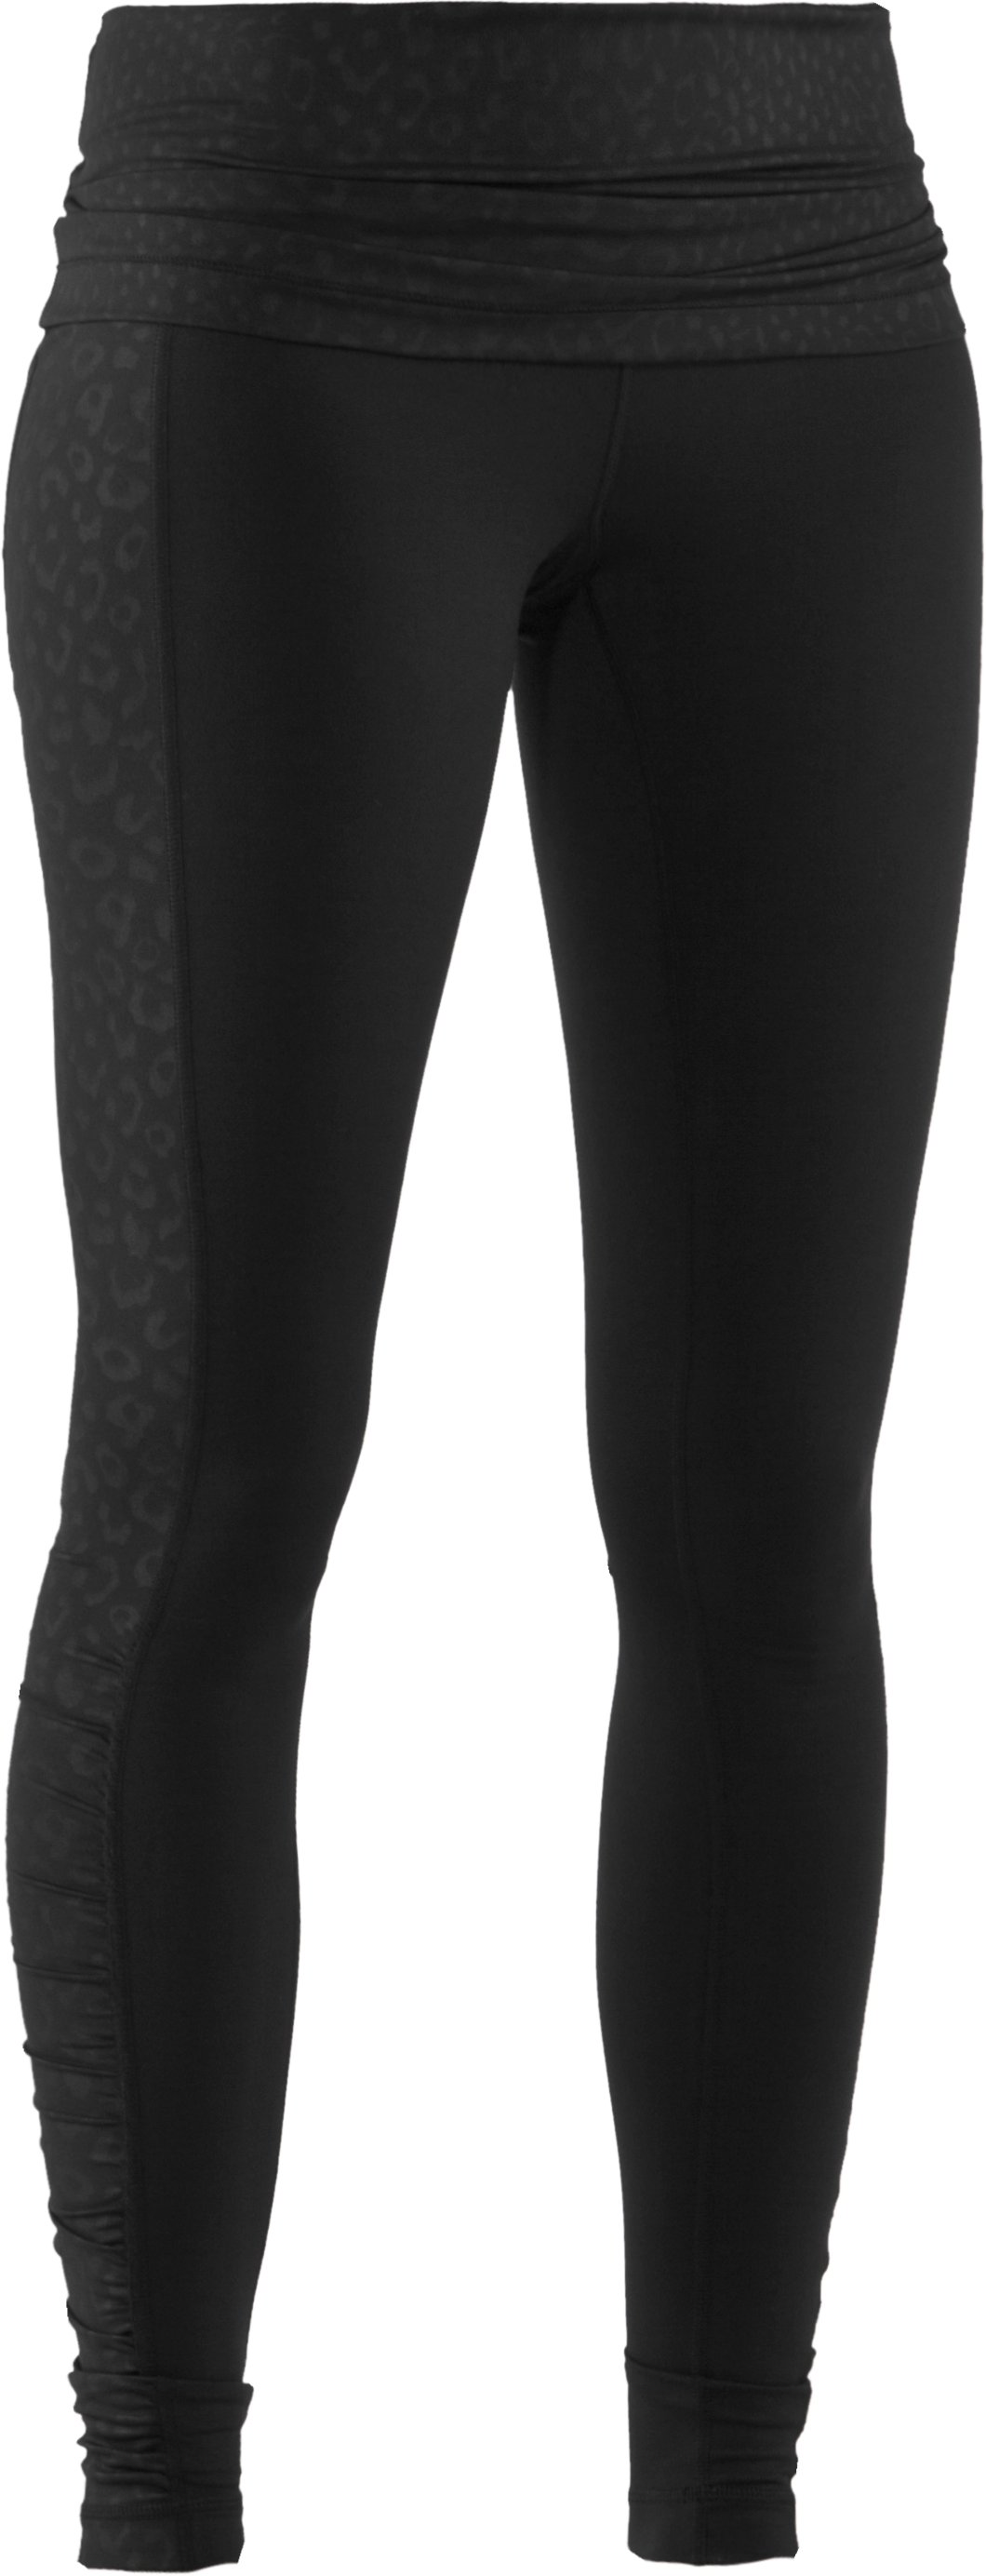 Women's UA StudioLux® Noir Foldover Leggings, Black